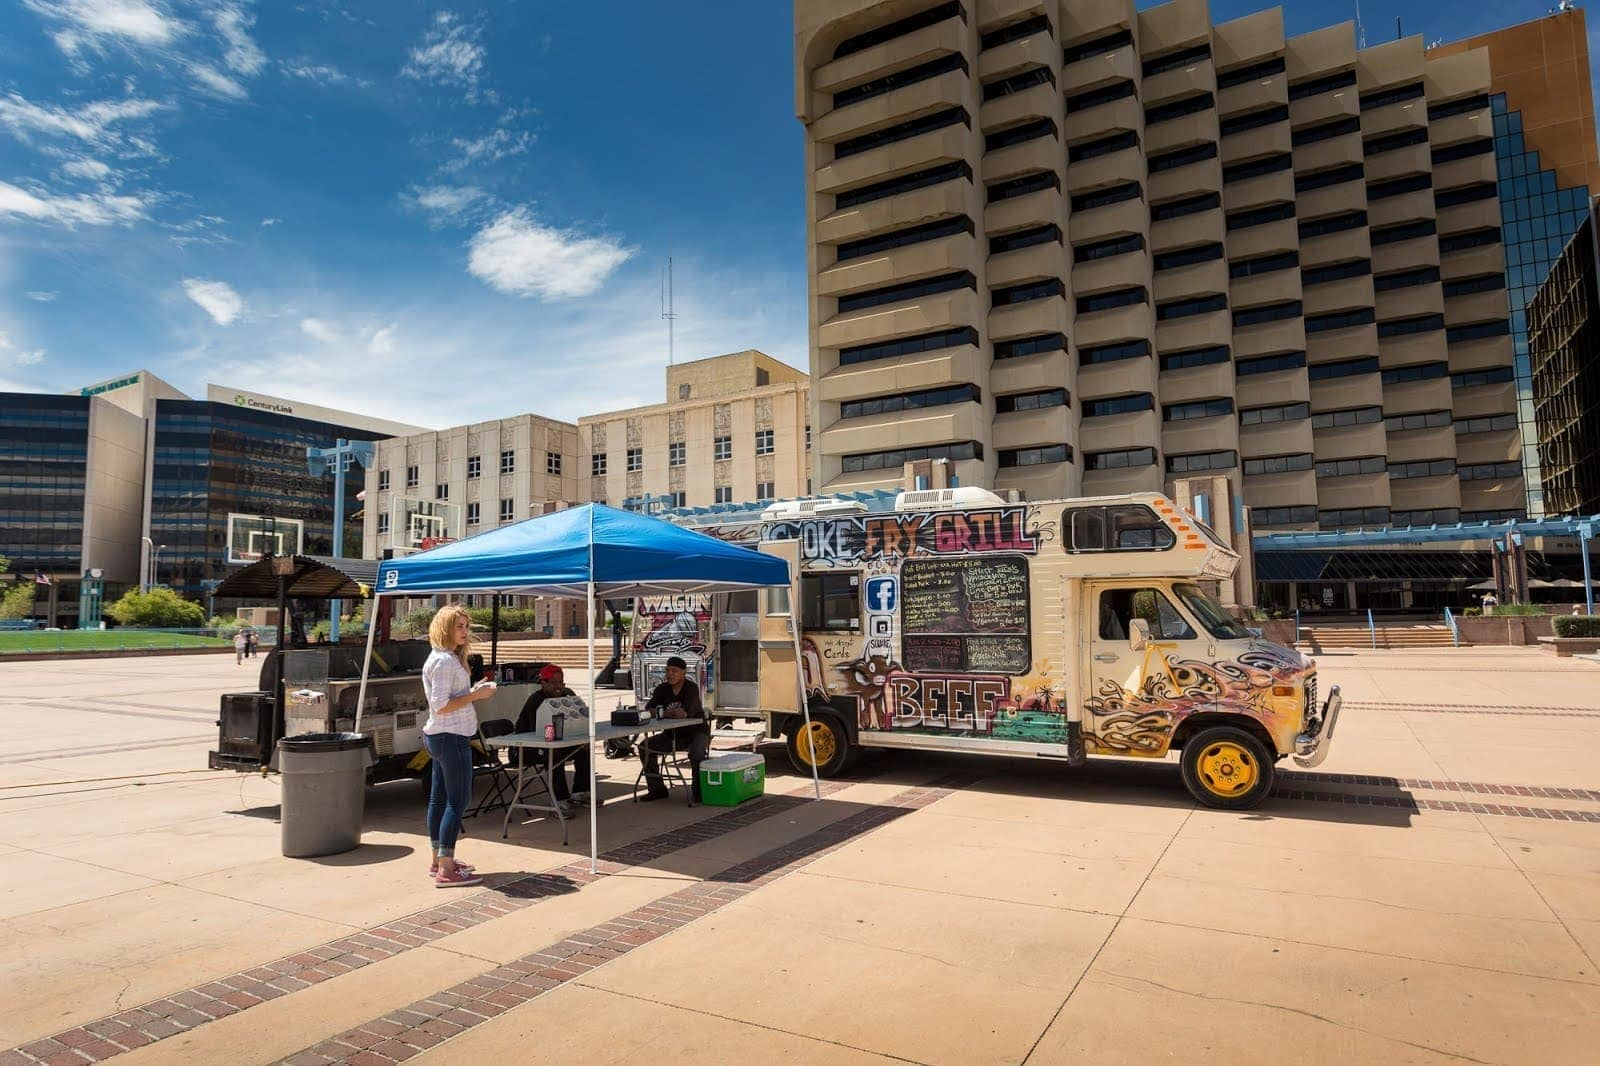 Food Trucks New Mexico by Laurence Norah